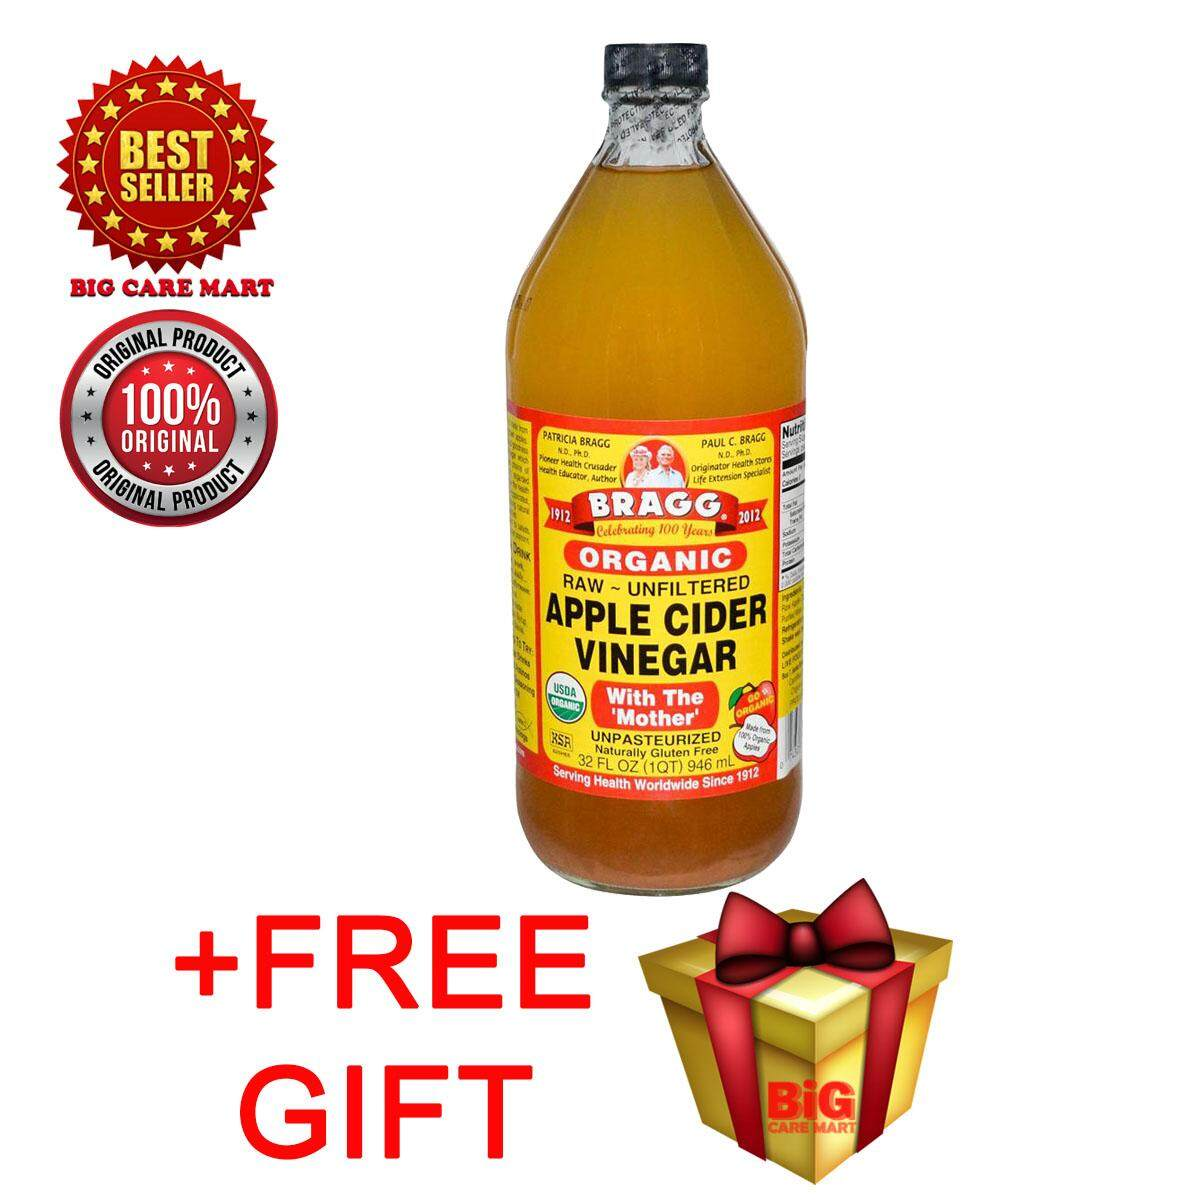 Bragg Organic Apple Cider Vinegar 946ml + Free Gift By Big Care Mart.